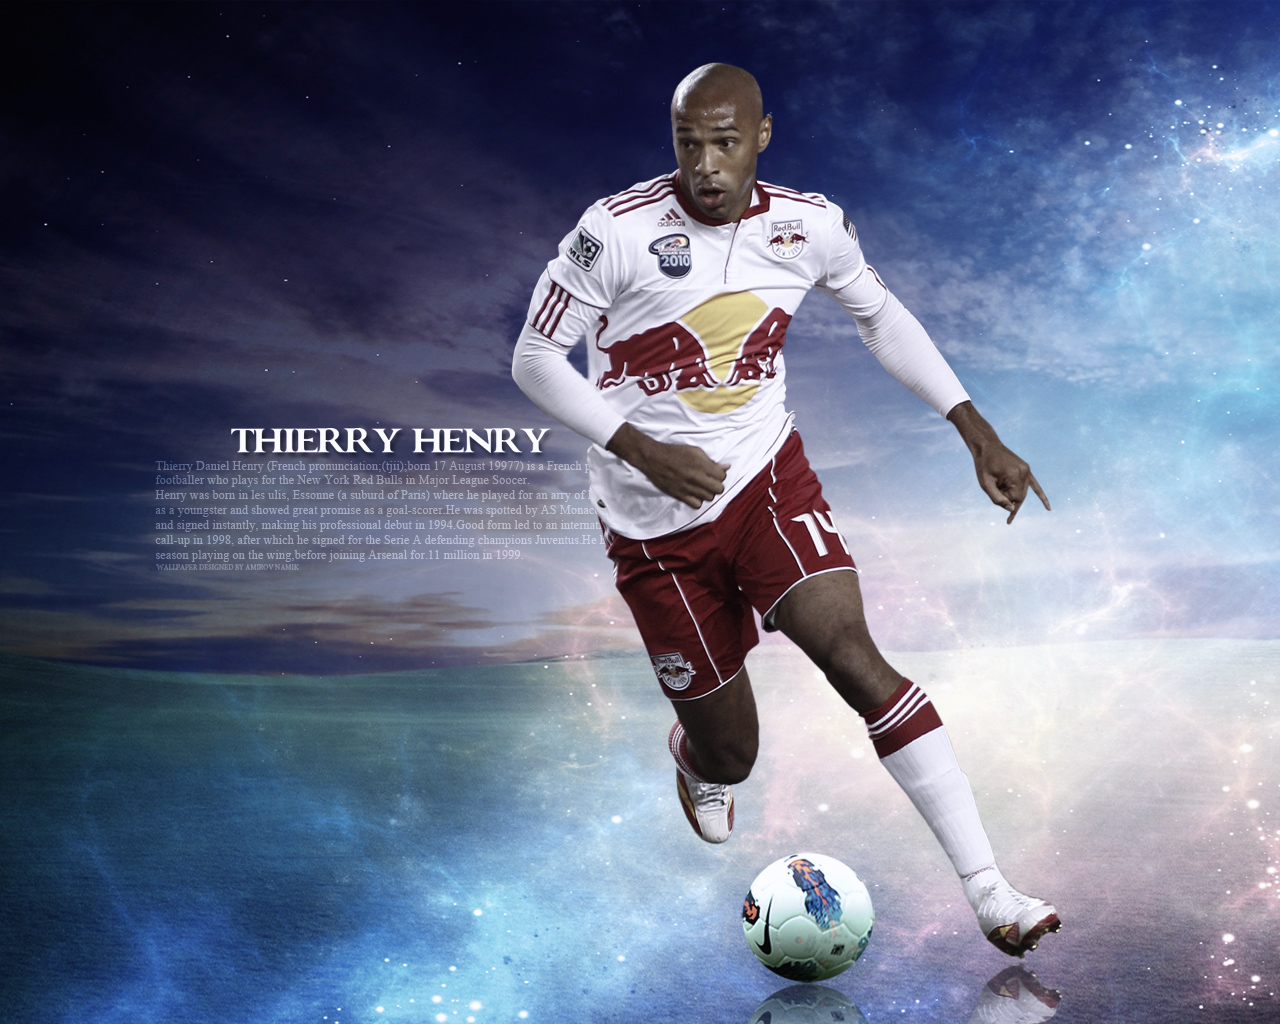 Free Download Thierry Henry Red Bulls New York Wallpaper